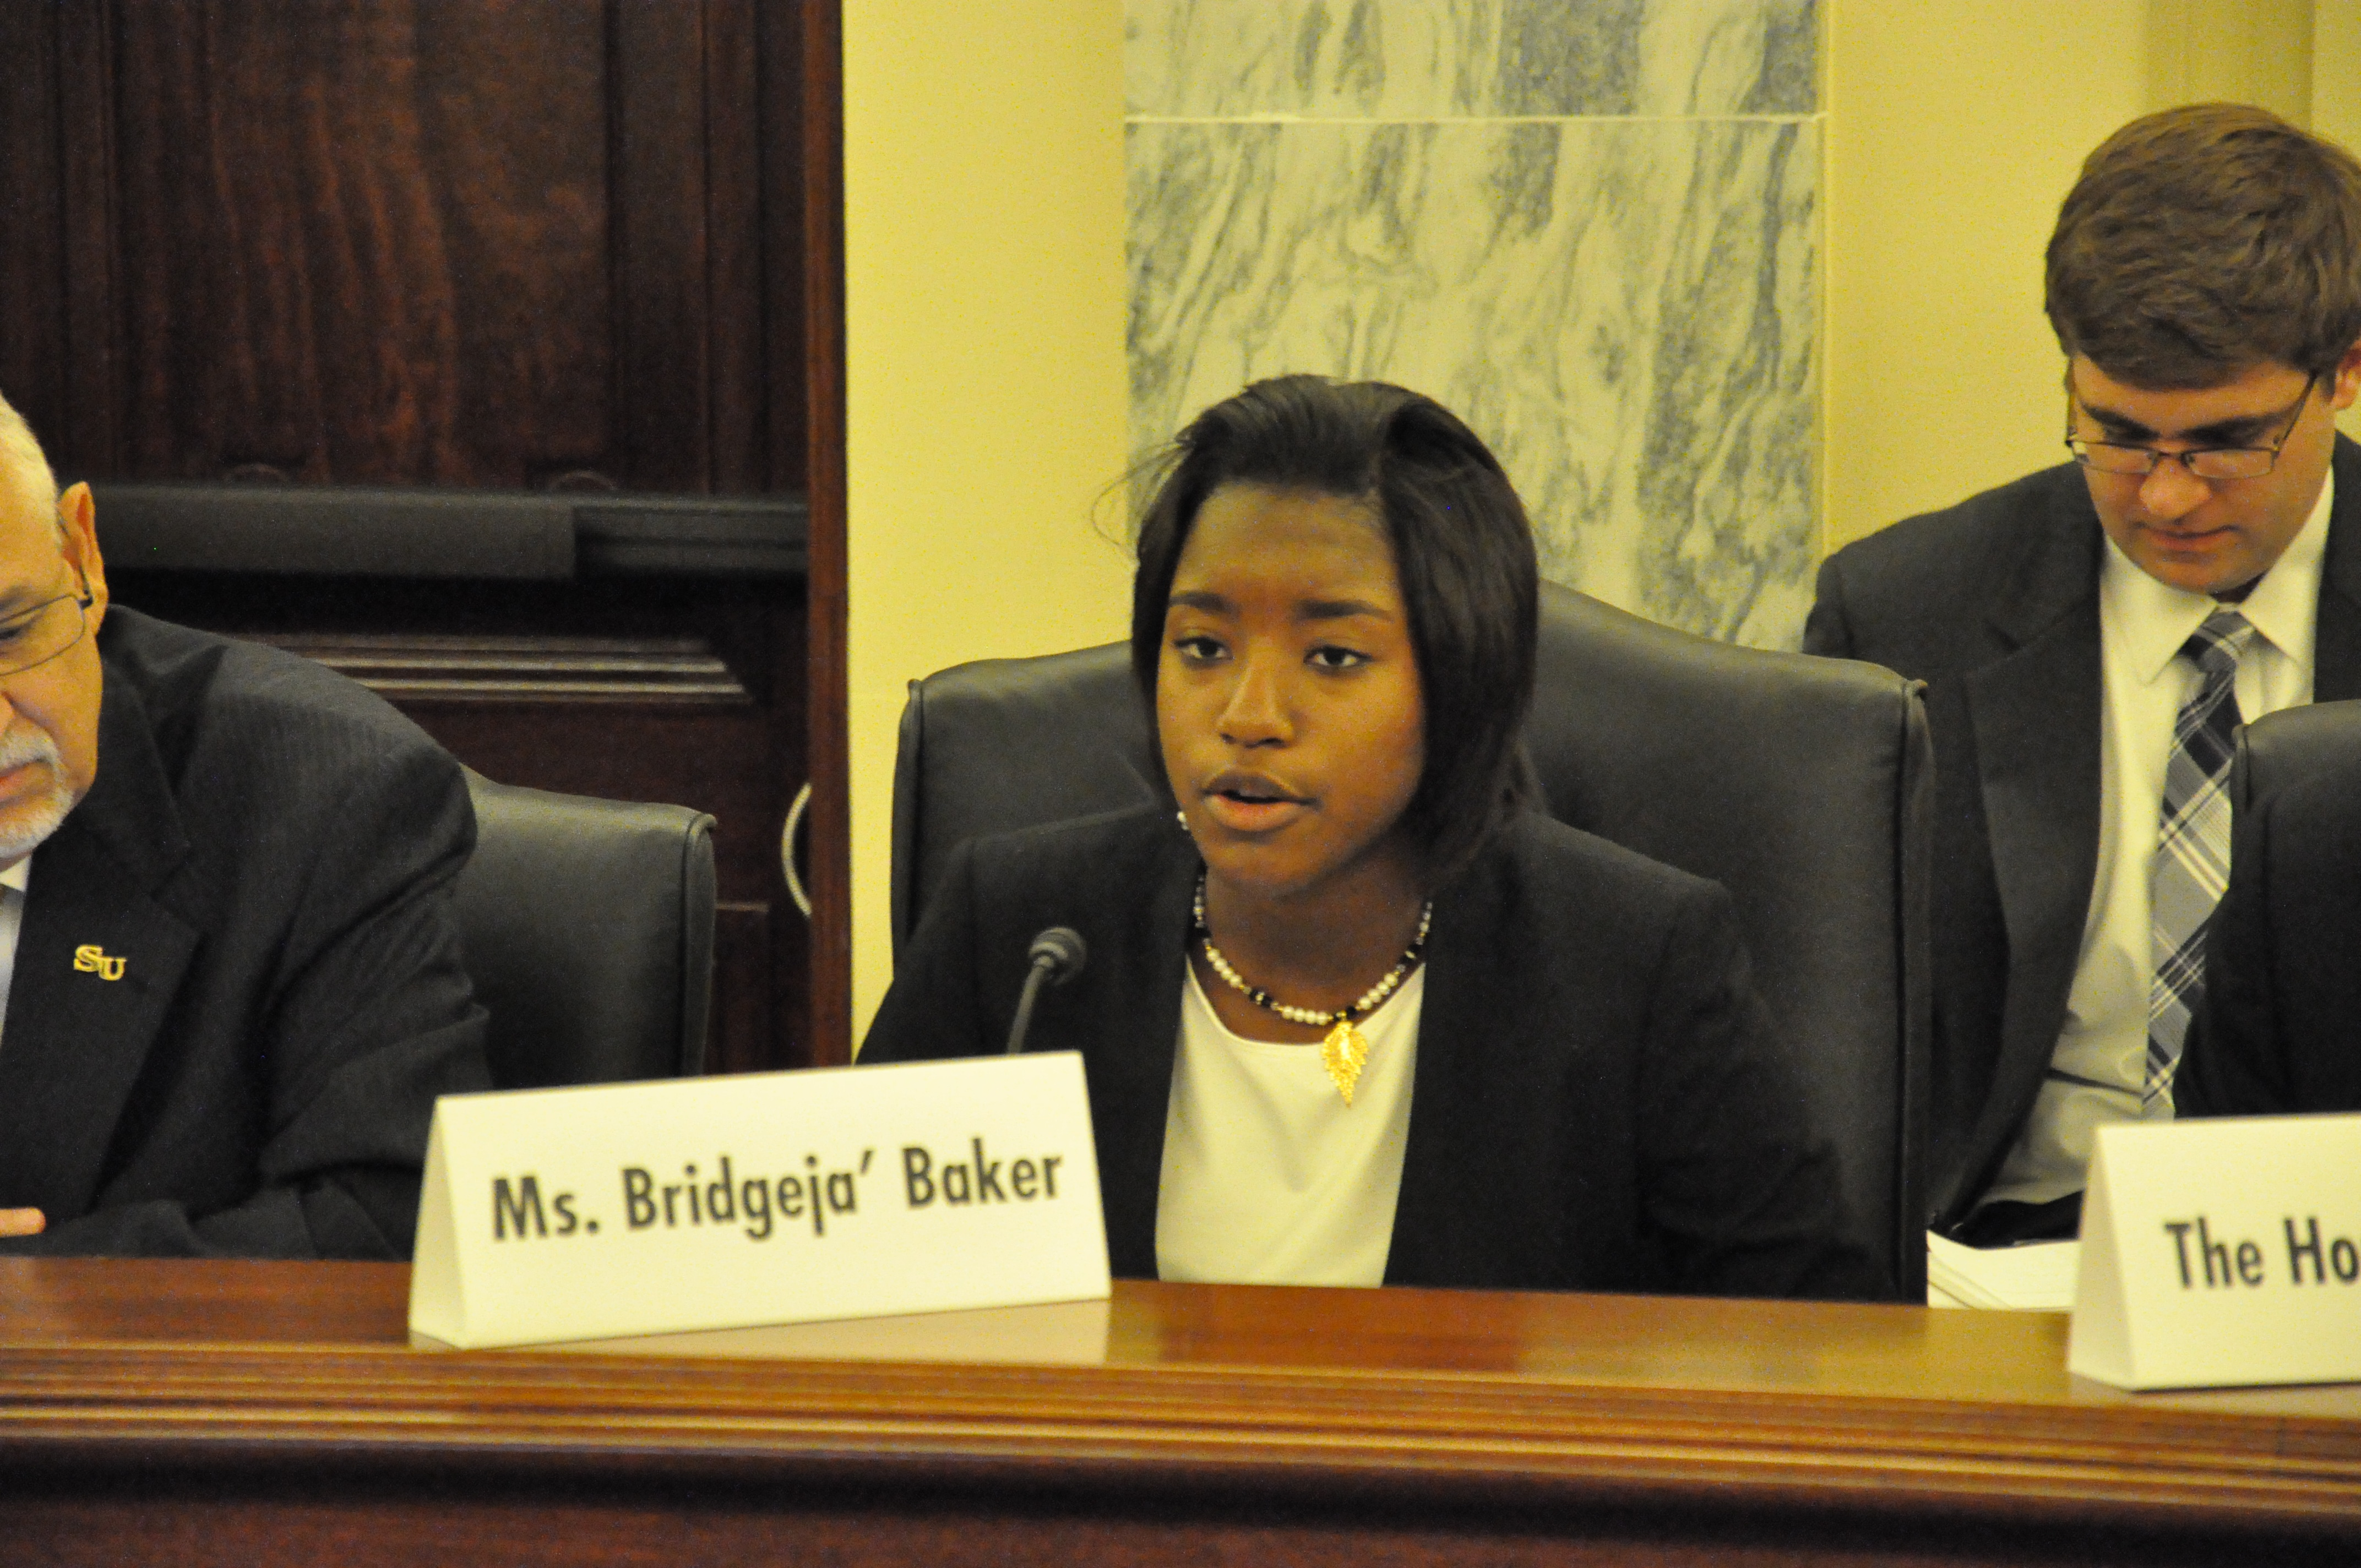 bridgeja-speak-to-other-panelist-about-programs-that-helped-her-business.jpg